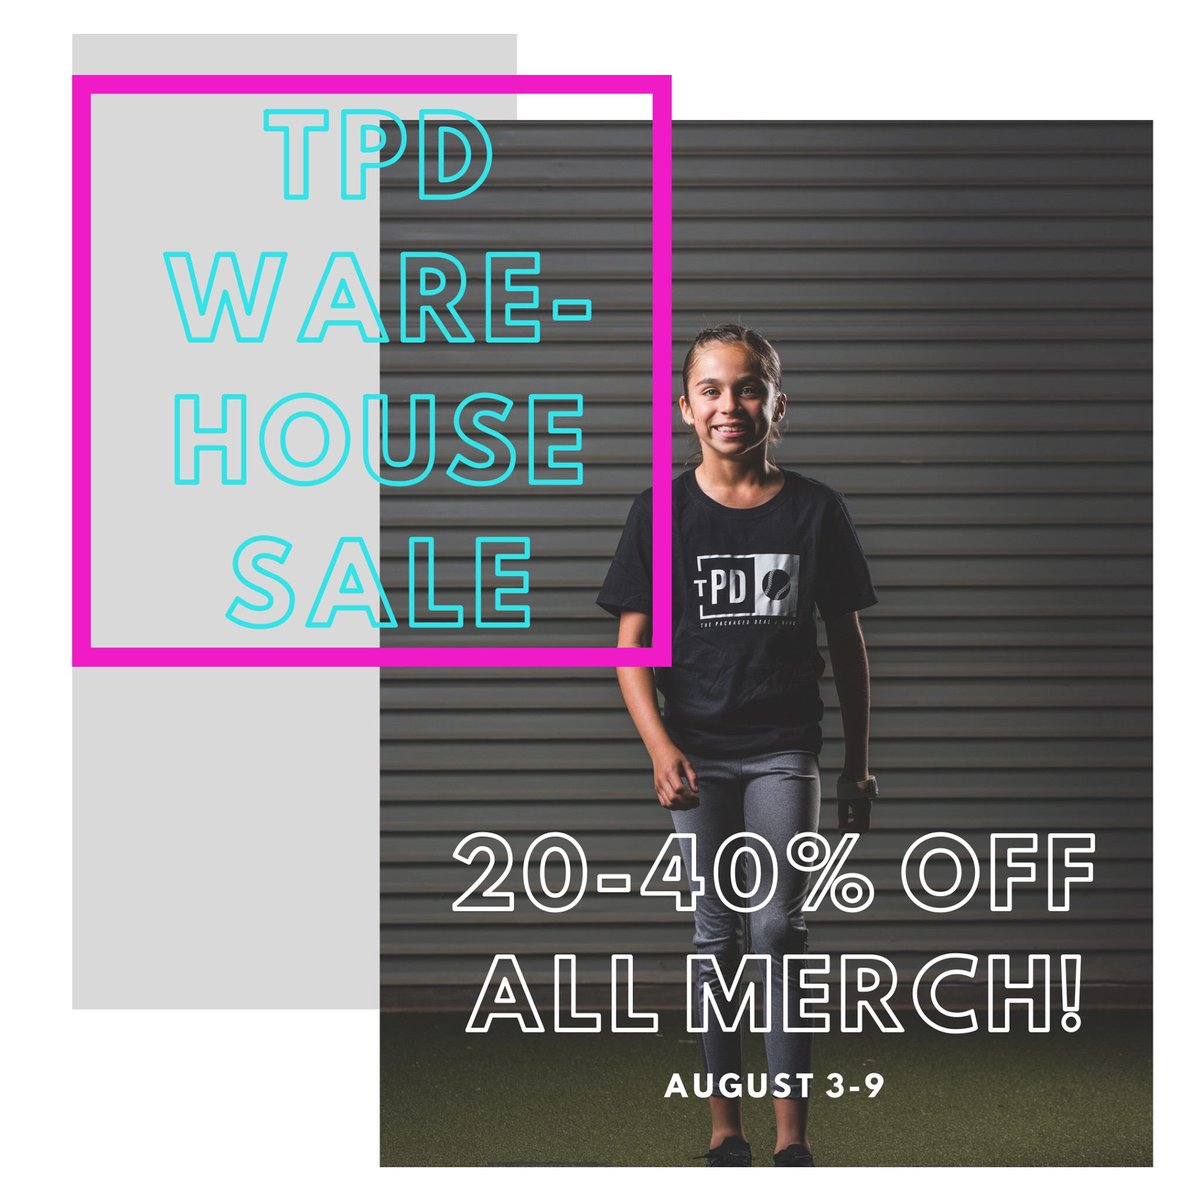 Did someone say SALE?   Starts tomorrow!  https://t.co/Ls6hJBCqFv   GET IN ON THIS! https://t.co/VnN0GenIwl